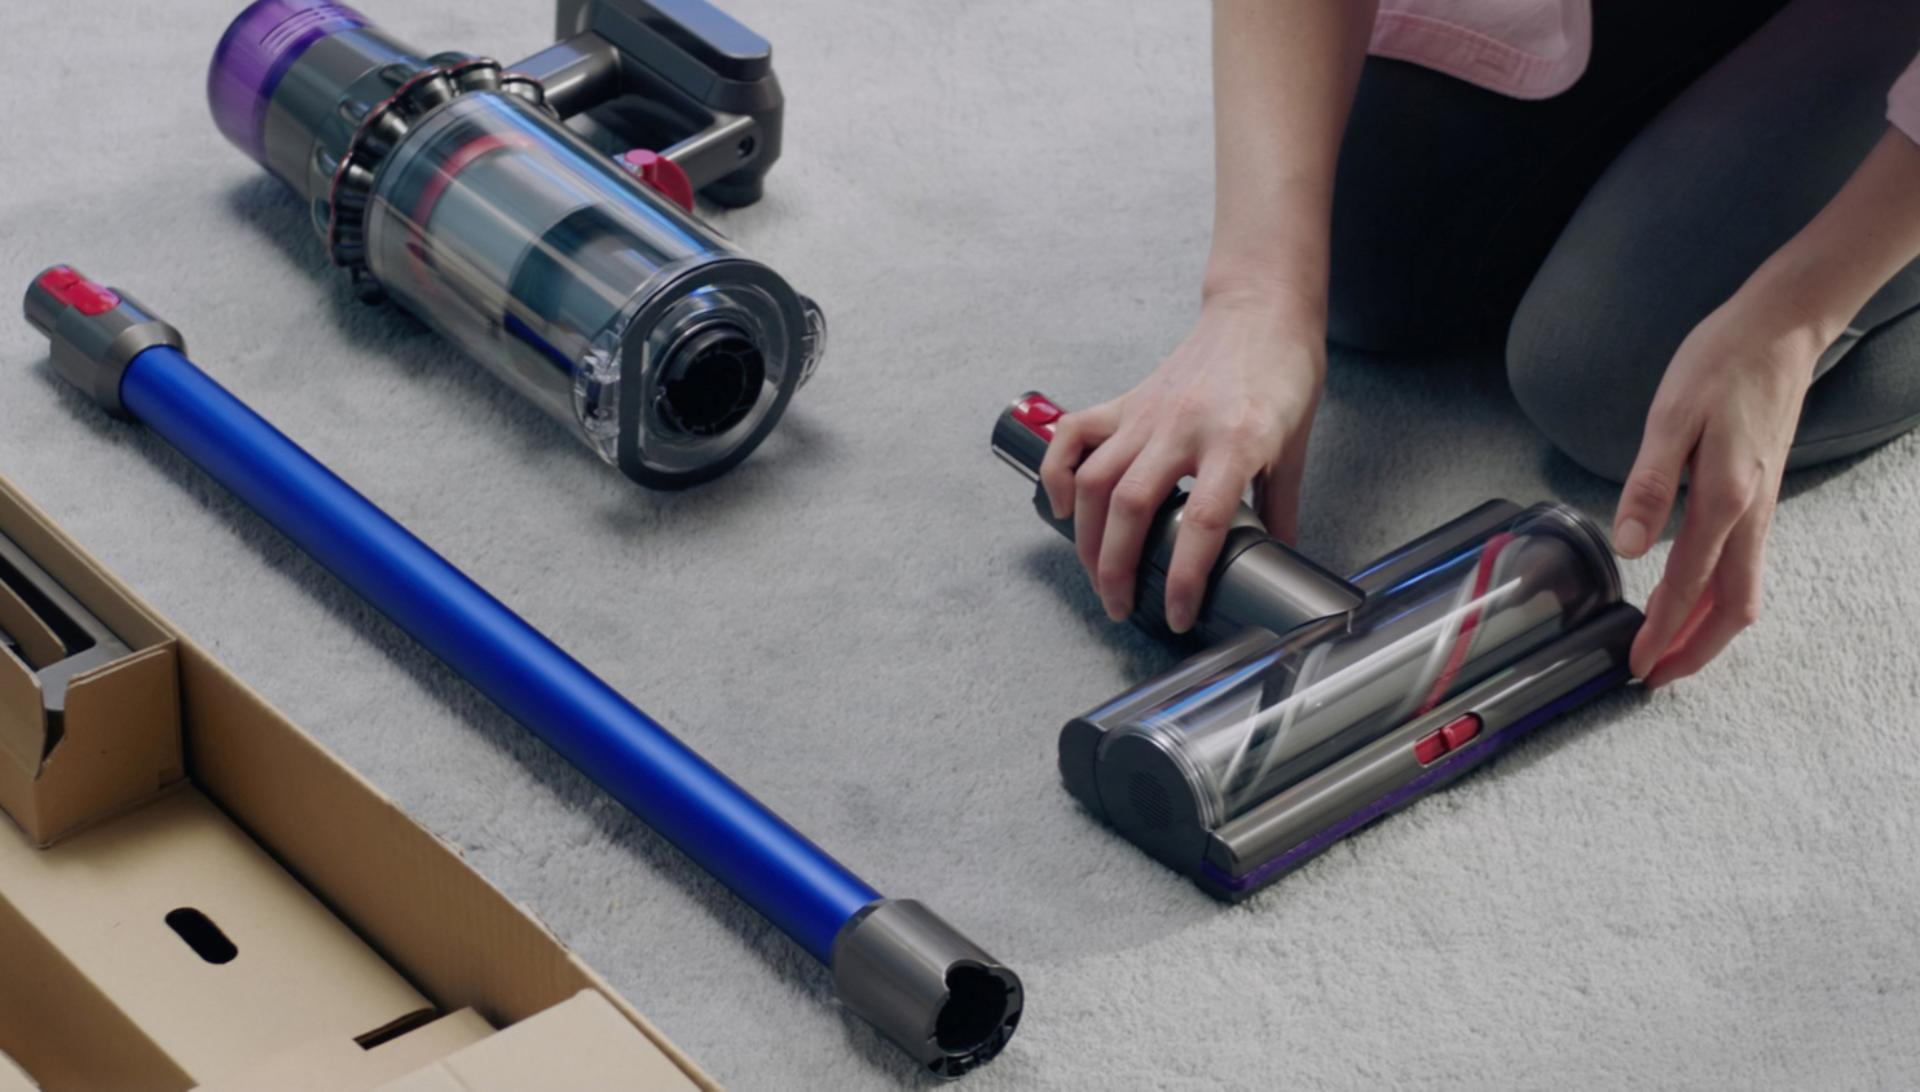 Dyson V11 getting started video